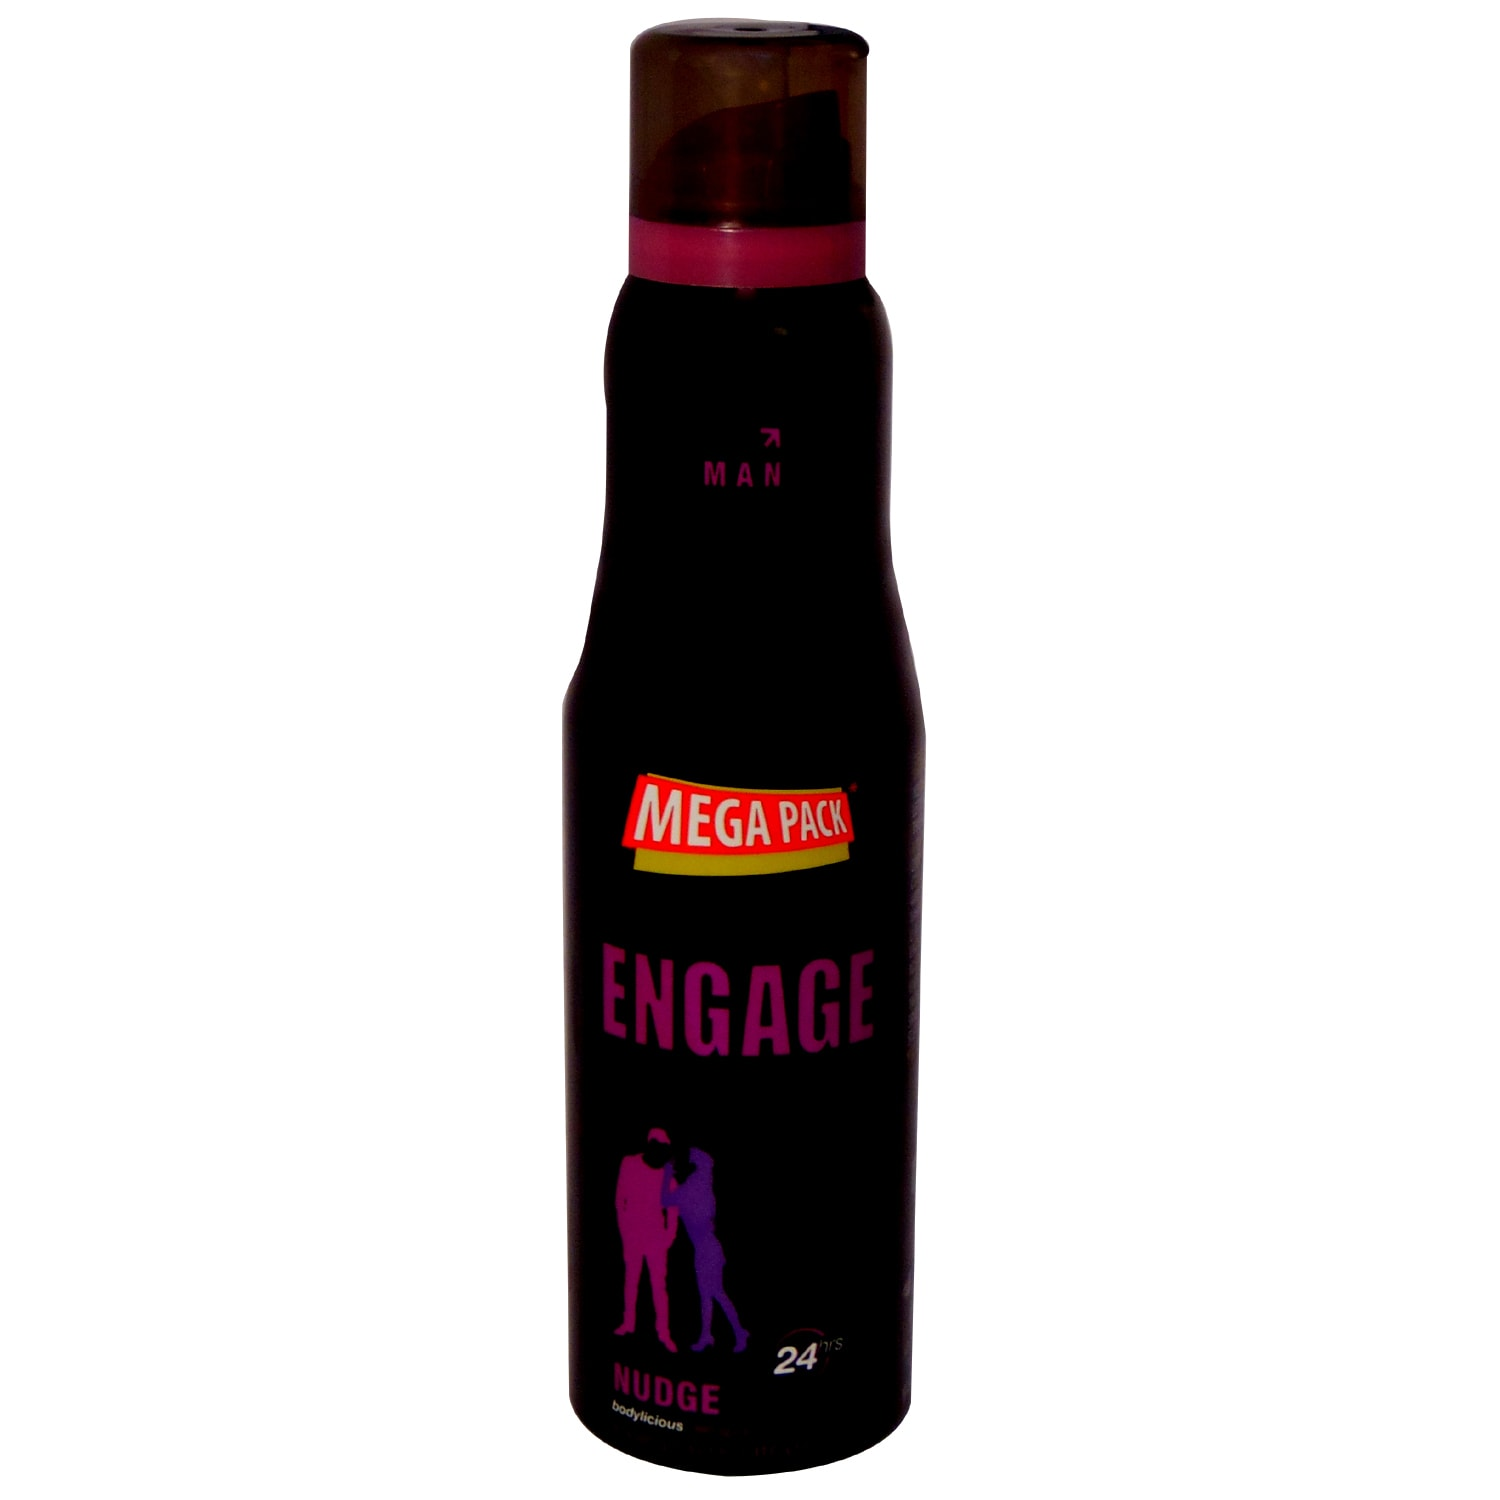 Engage Nudge Deodorant Body Spray For Men, 220 ml, Pack of 1